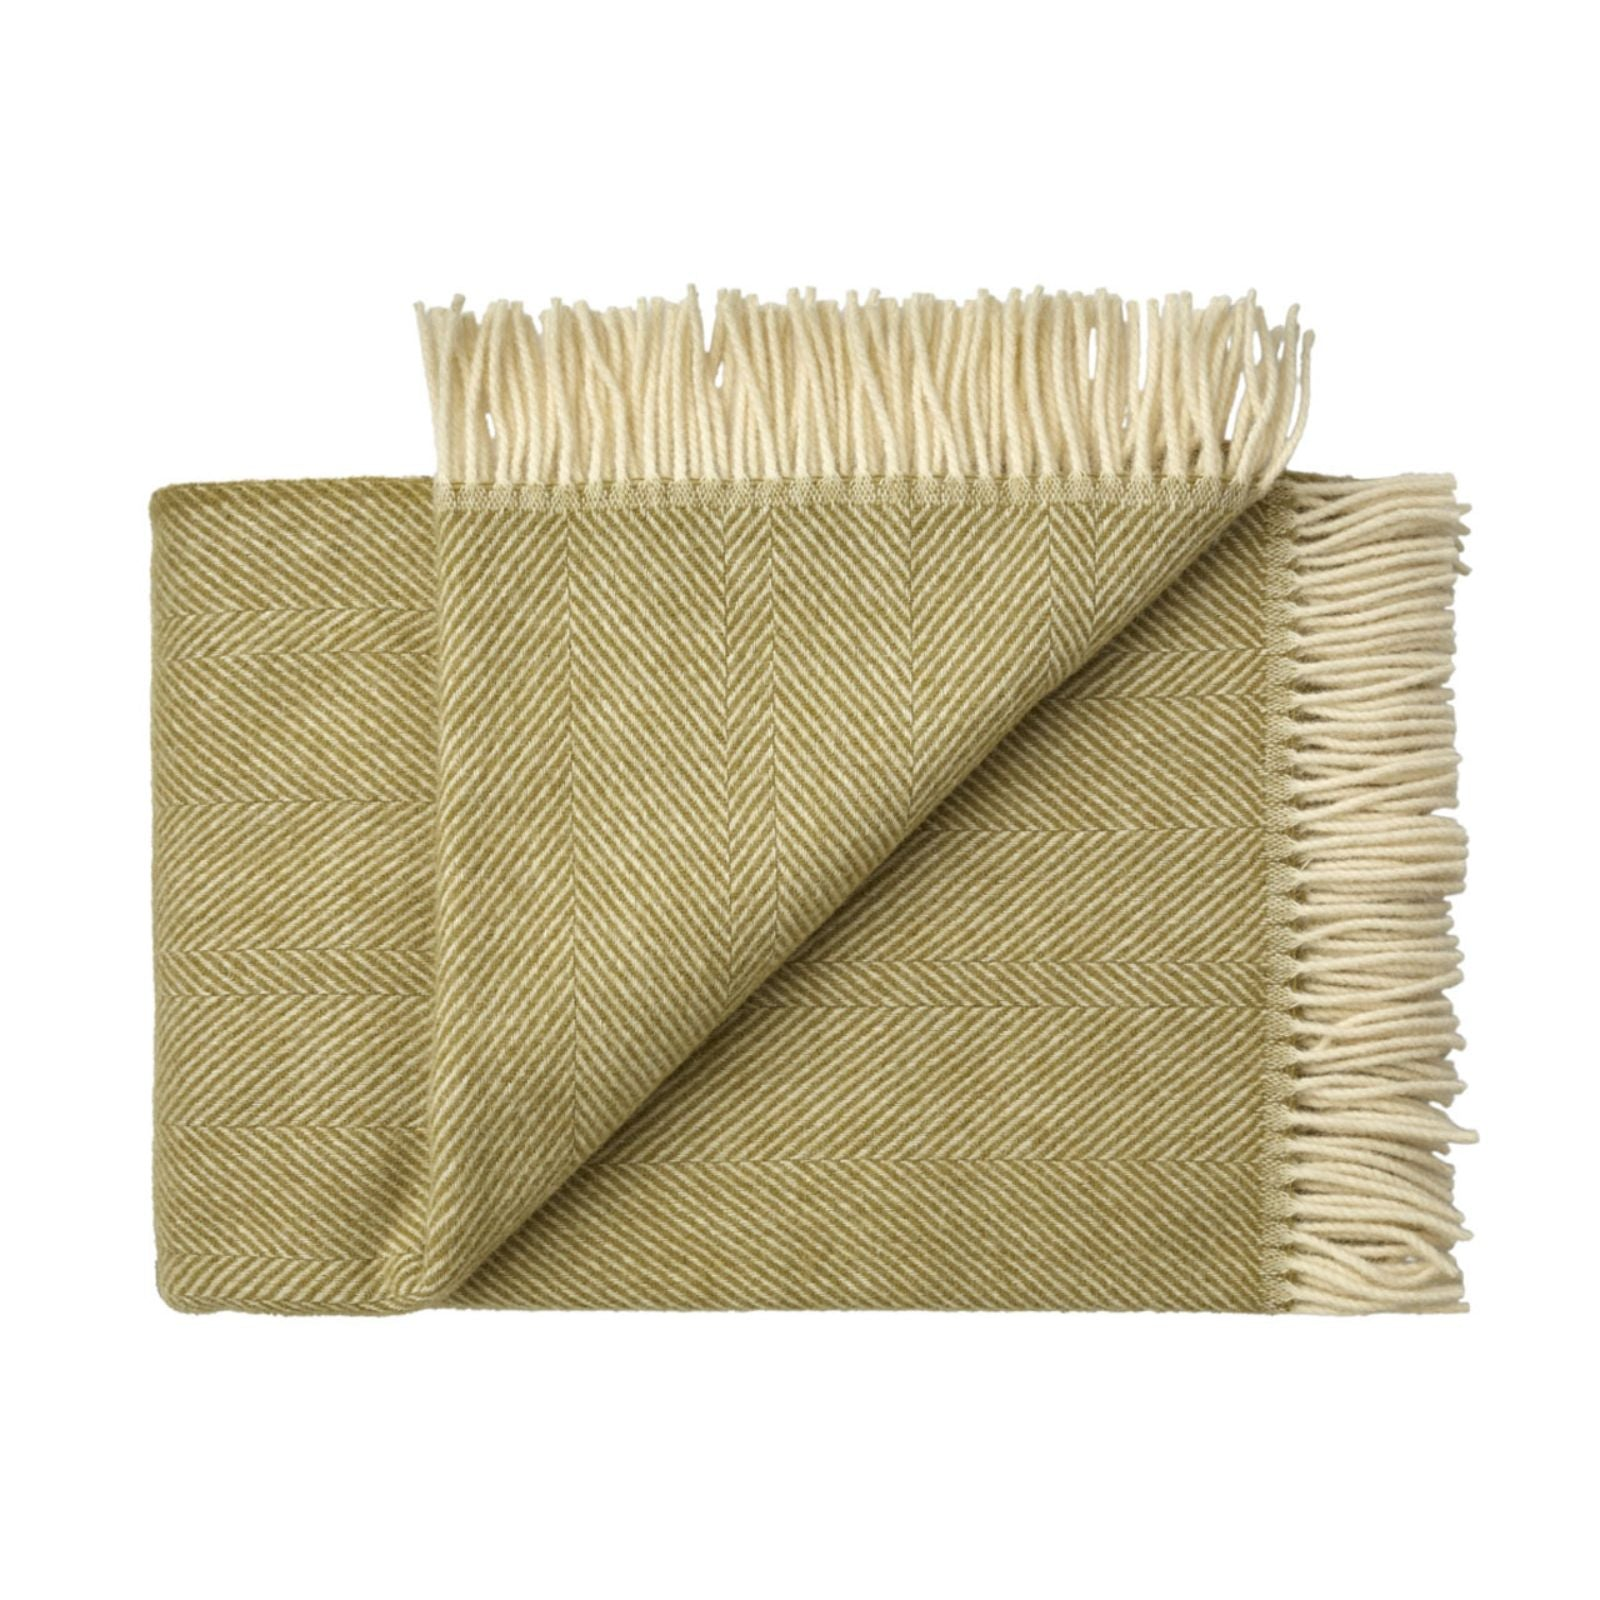 Weave Throws, Lindis